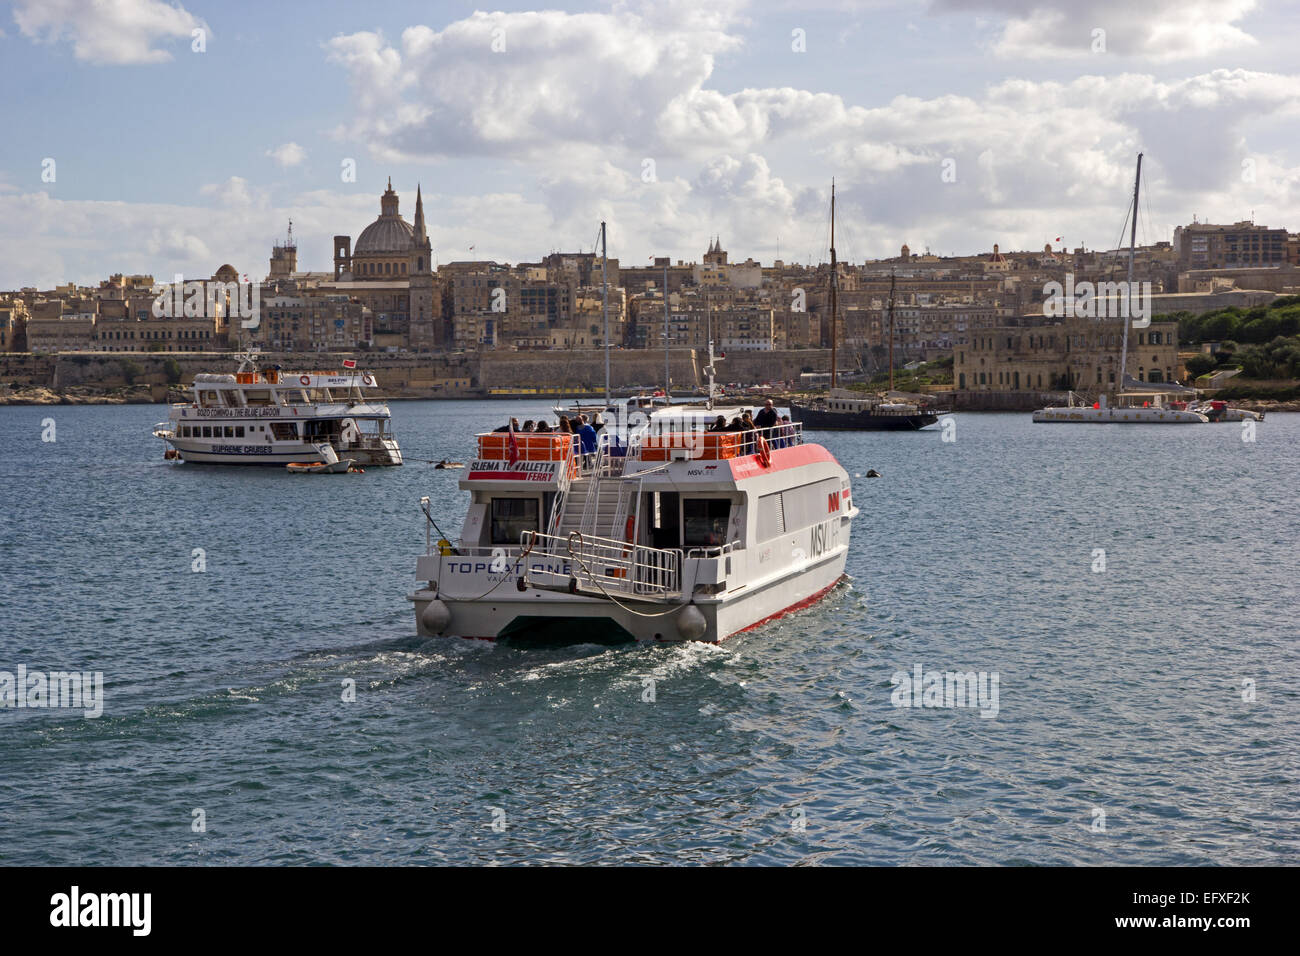 Top Cat 1, Sliema to Valletta ferry, operated by MSV Life, leaving Sliema, Malta - Stock Image